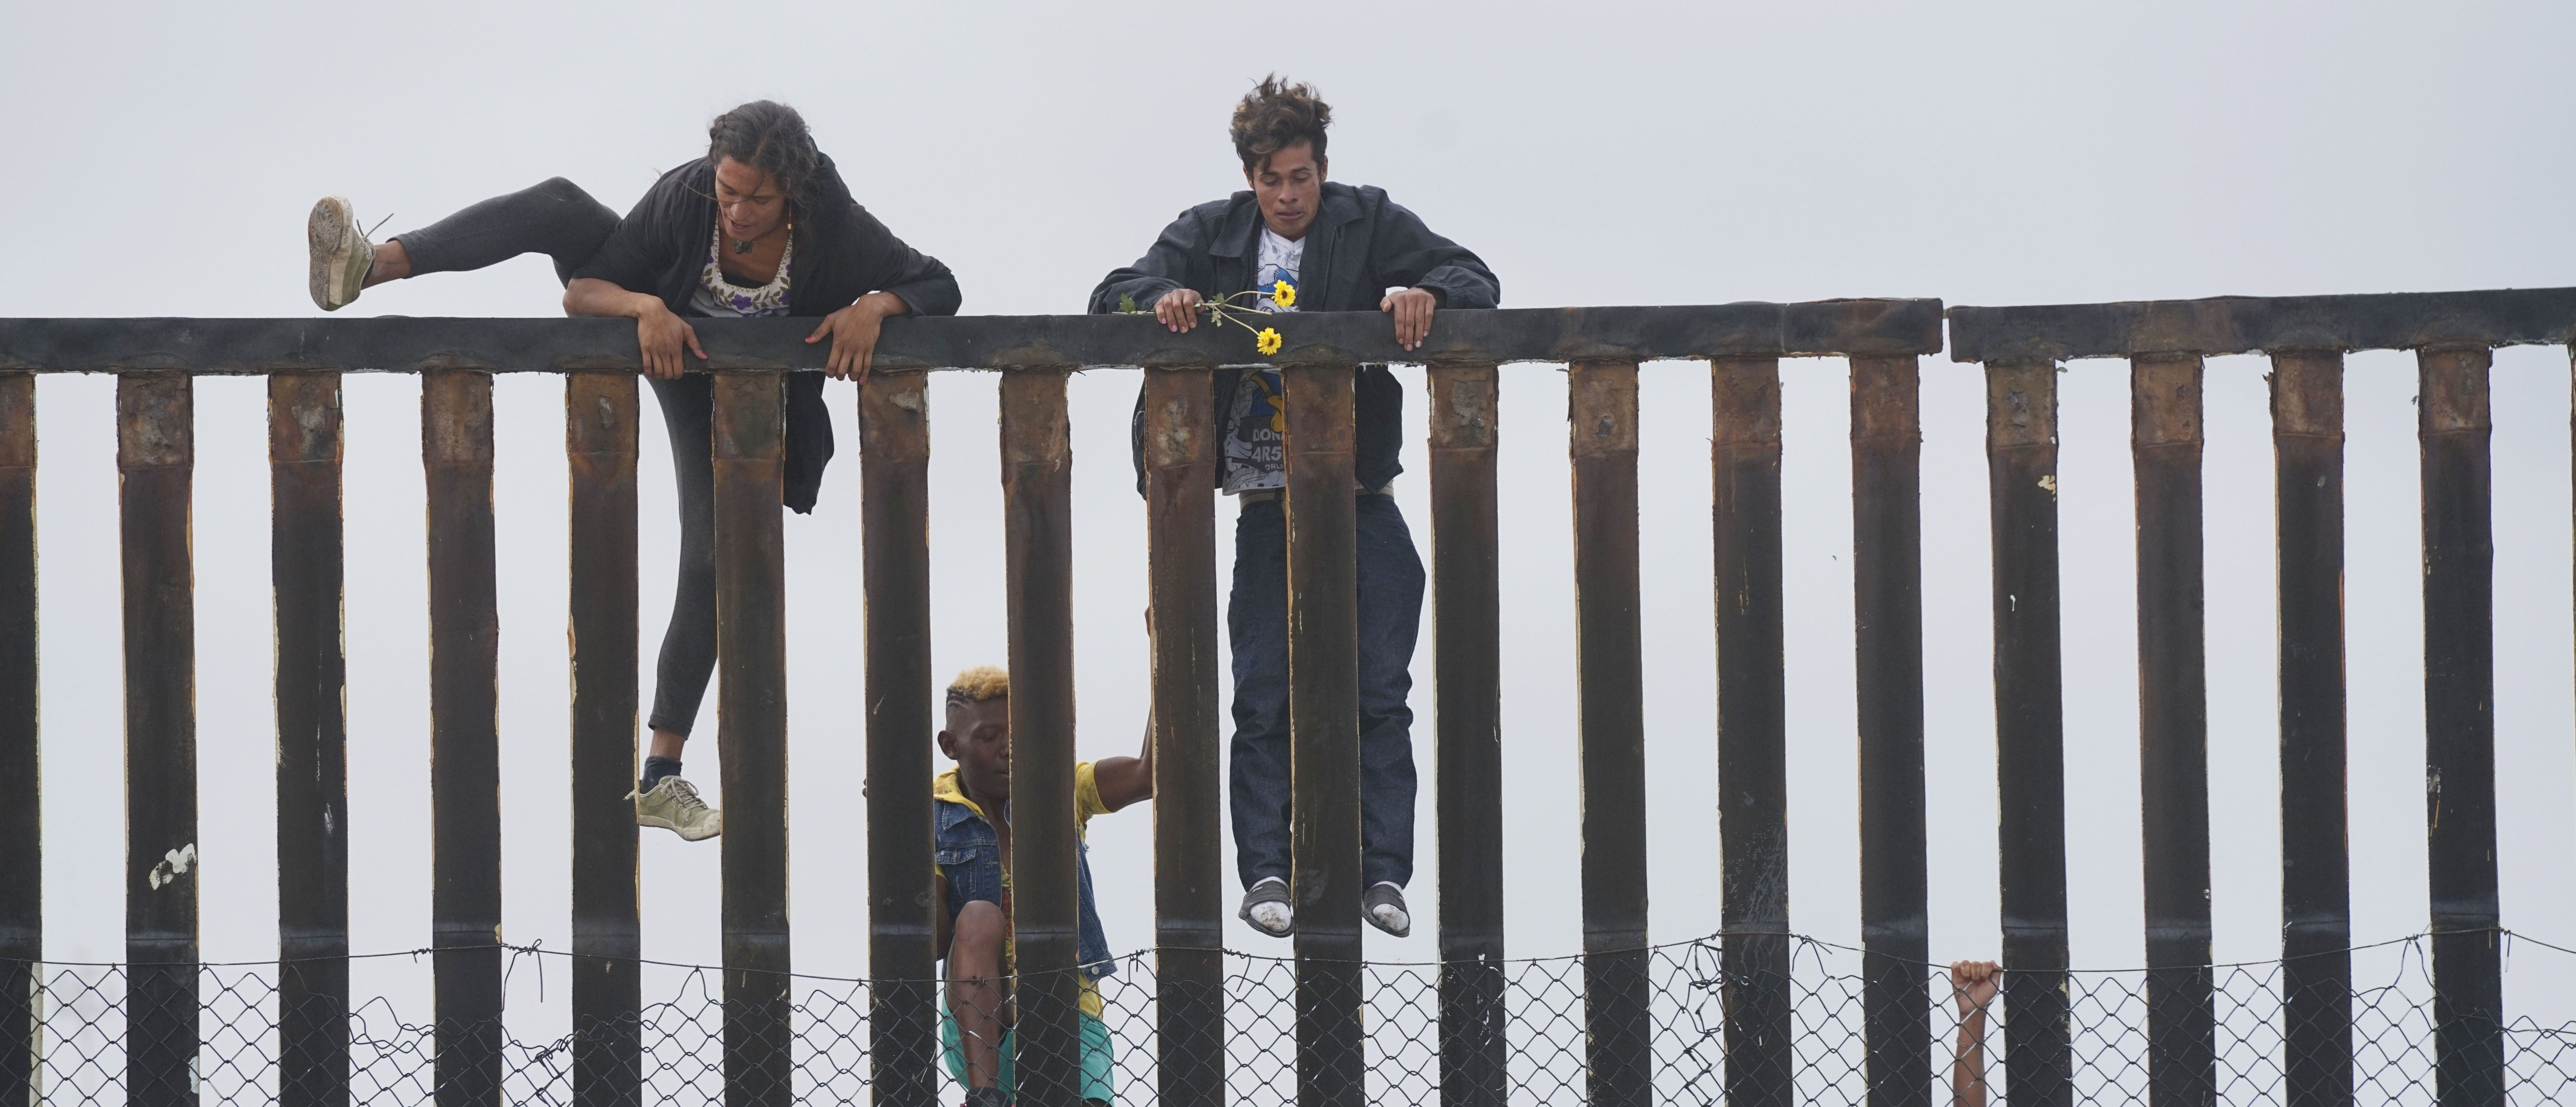 Migrant caravan demonstrators climb the US-Mexico border fence during a rally ... SANDY HUFFAKER/AFP/Getty Images